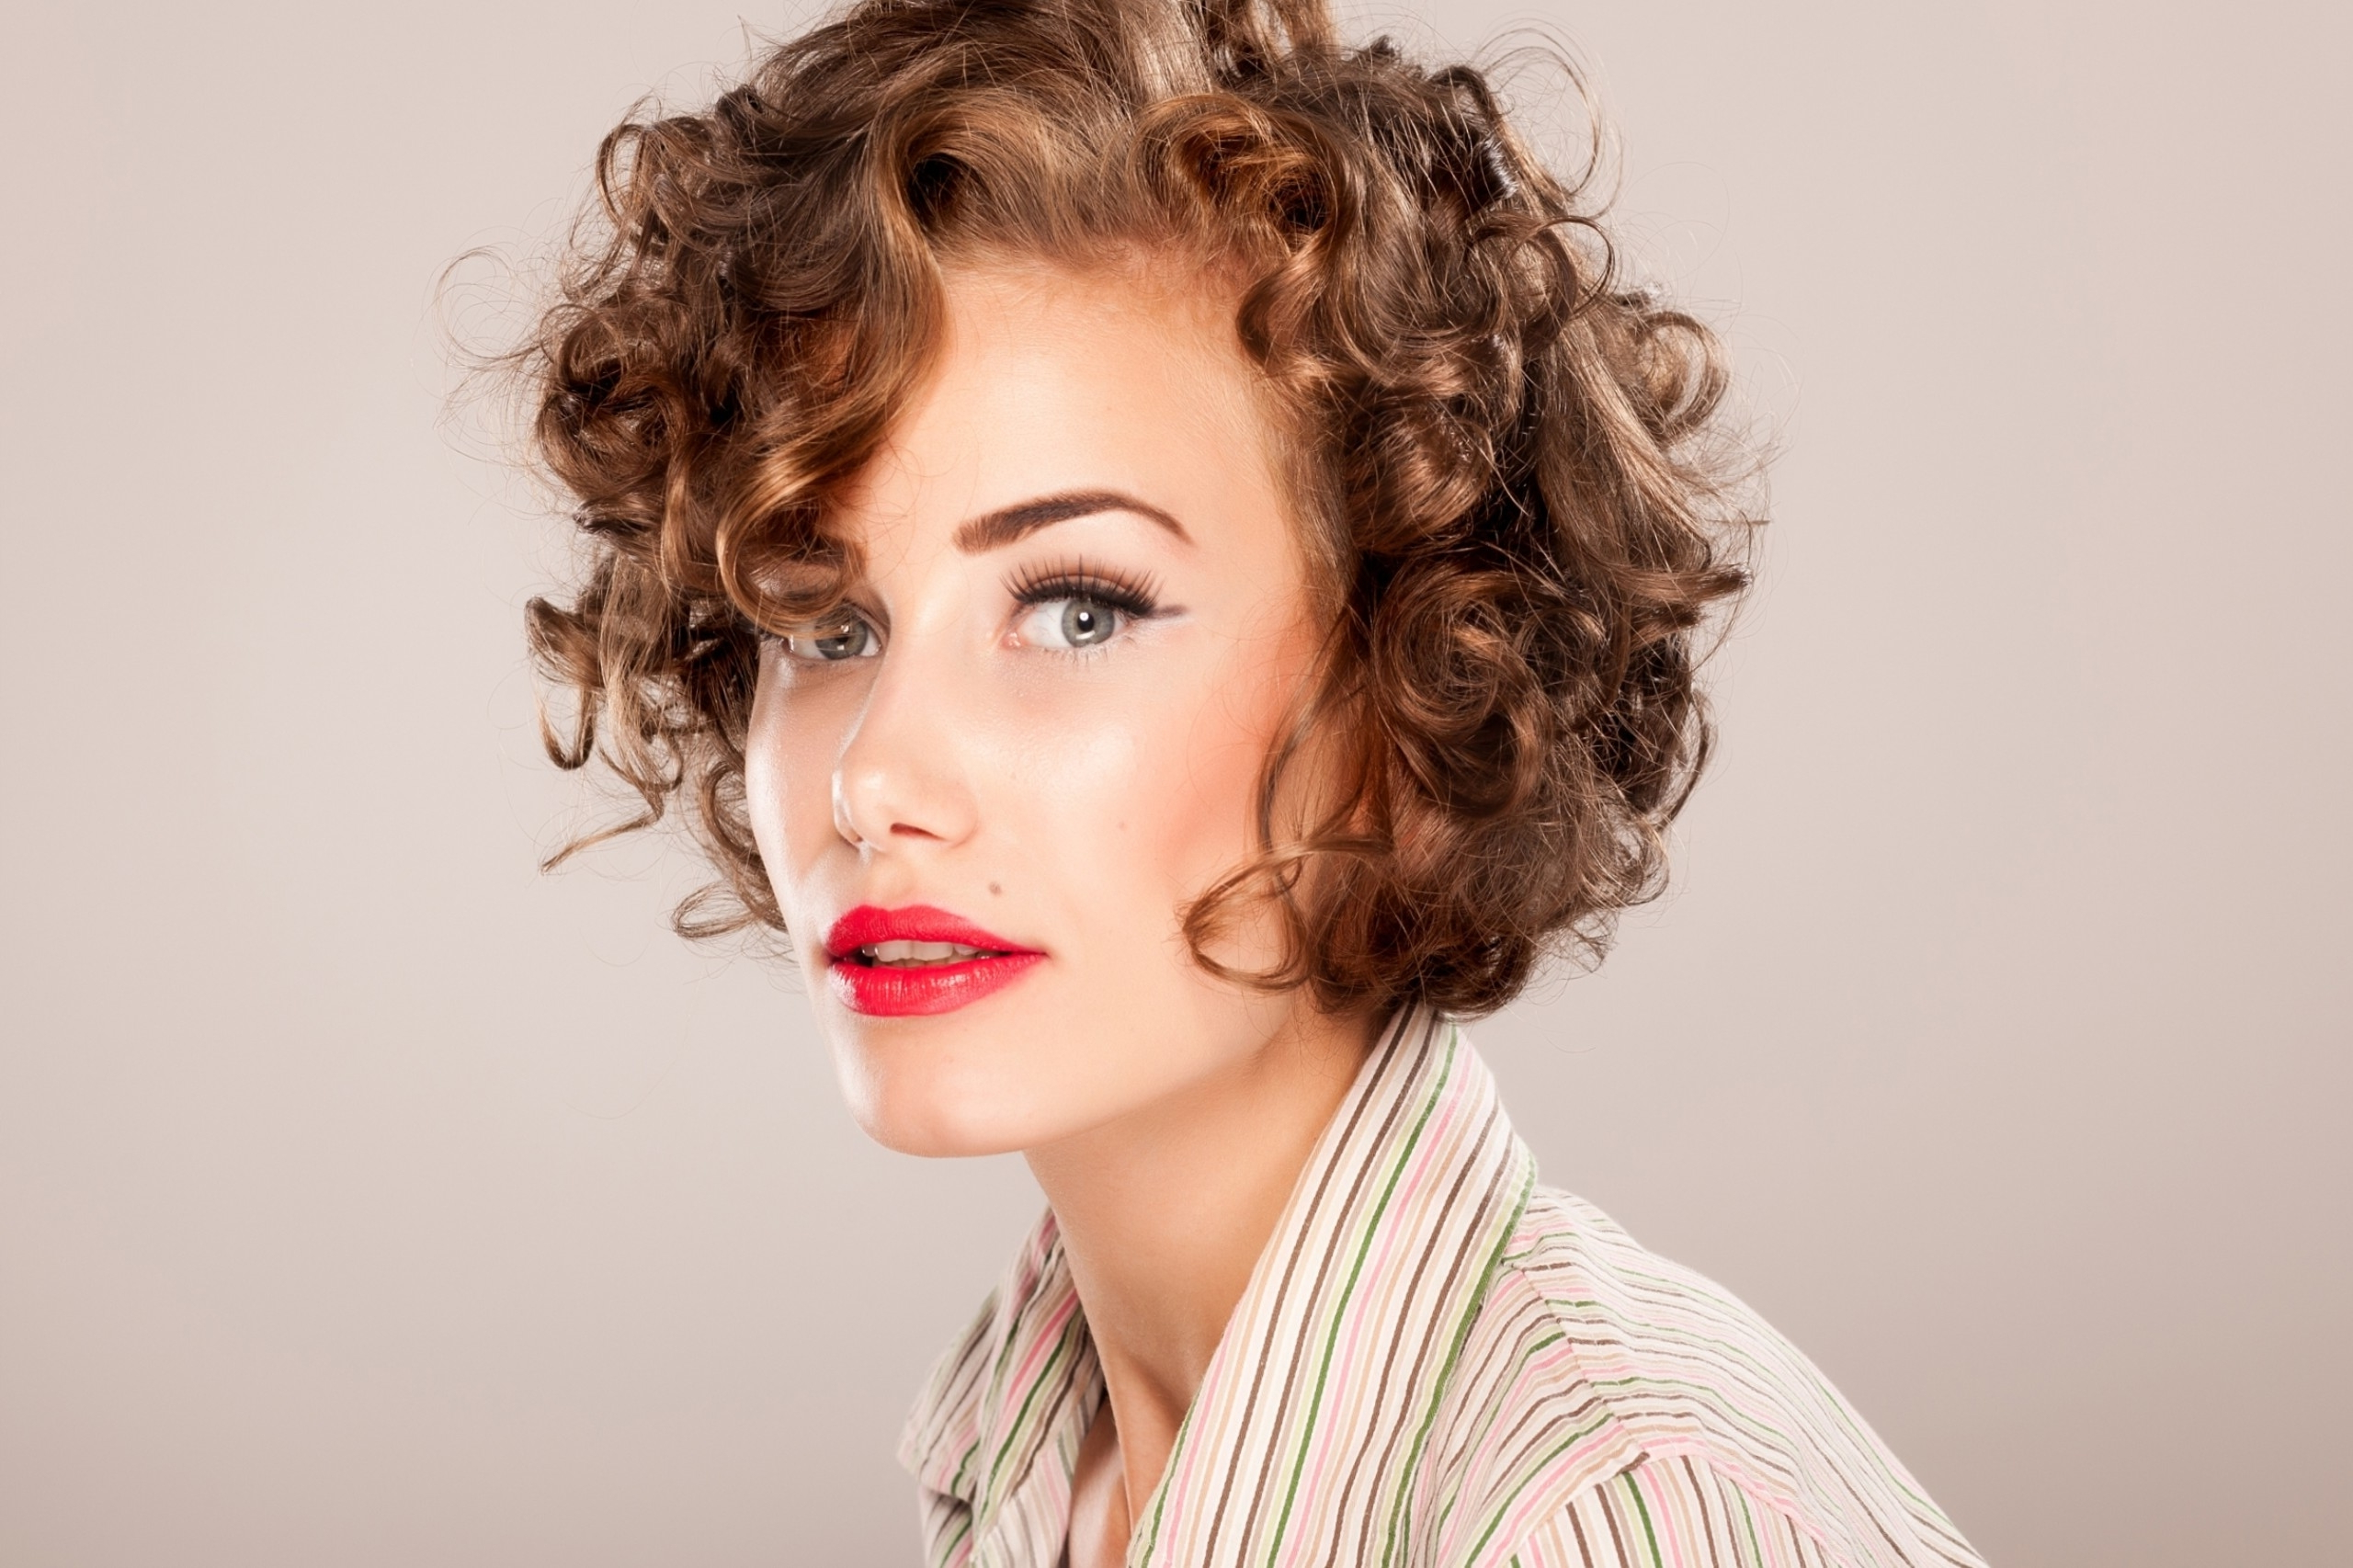 2018 Curly Short Haircuts – Short And Cuts Hairstyles Intended For Short Hairstyles For Ladies With Curly Hair (View 7 of 25)